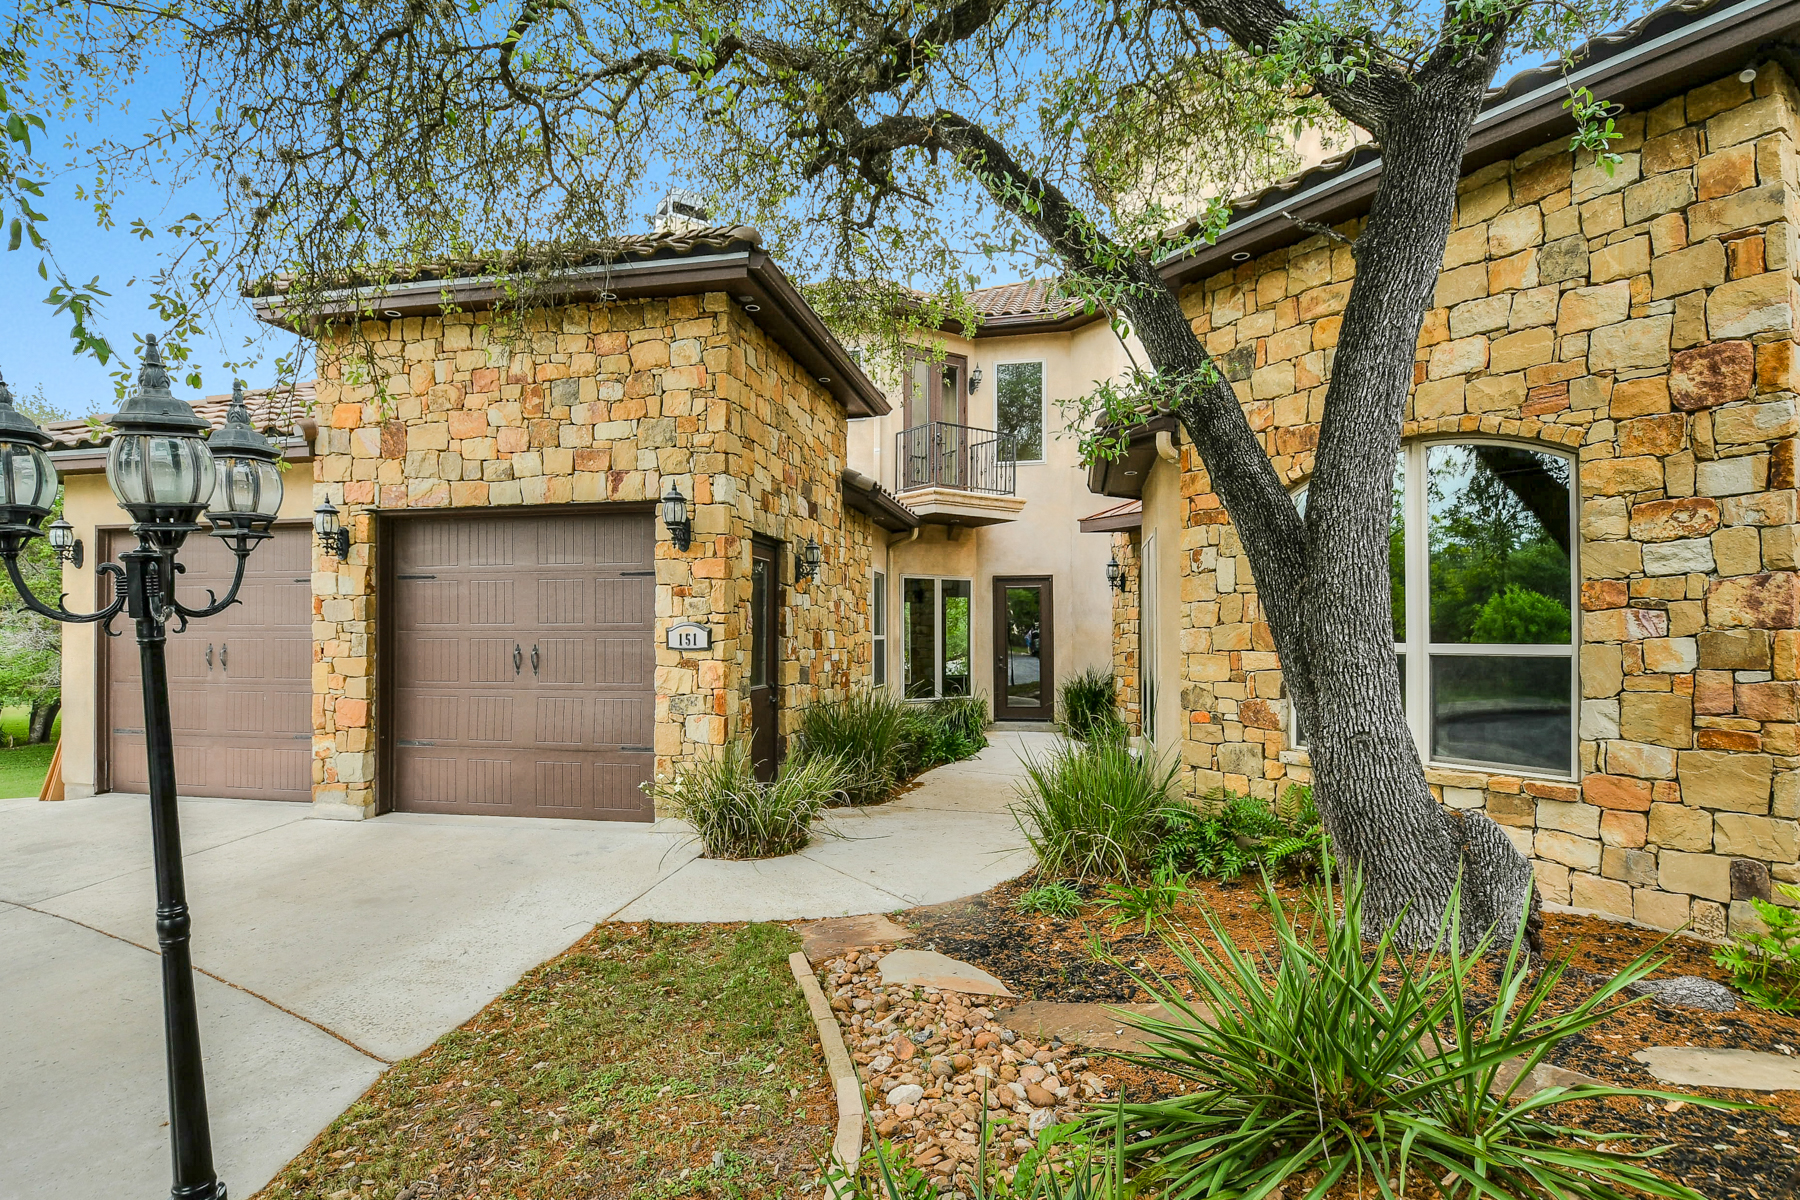 Single Family Home for Sale at Beautiful Tuscan-Style Home in The Dominion 151 Palmilla Ct San Antonio, Texas 78257 United States